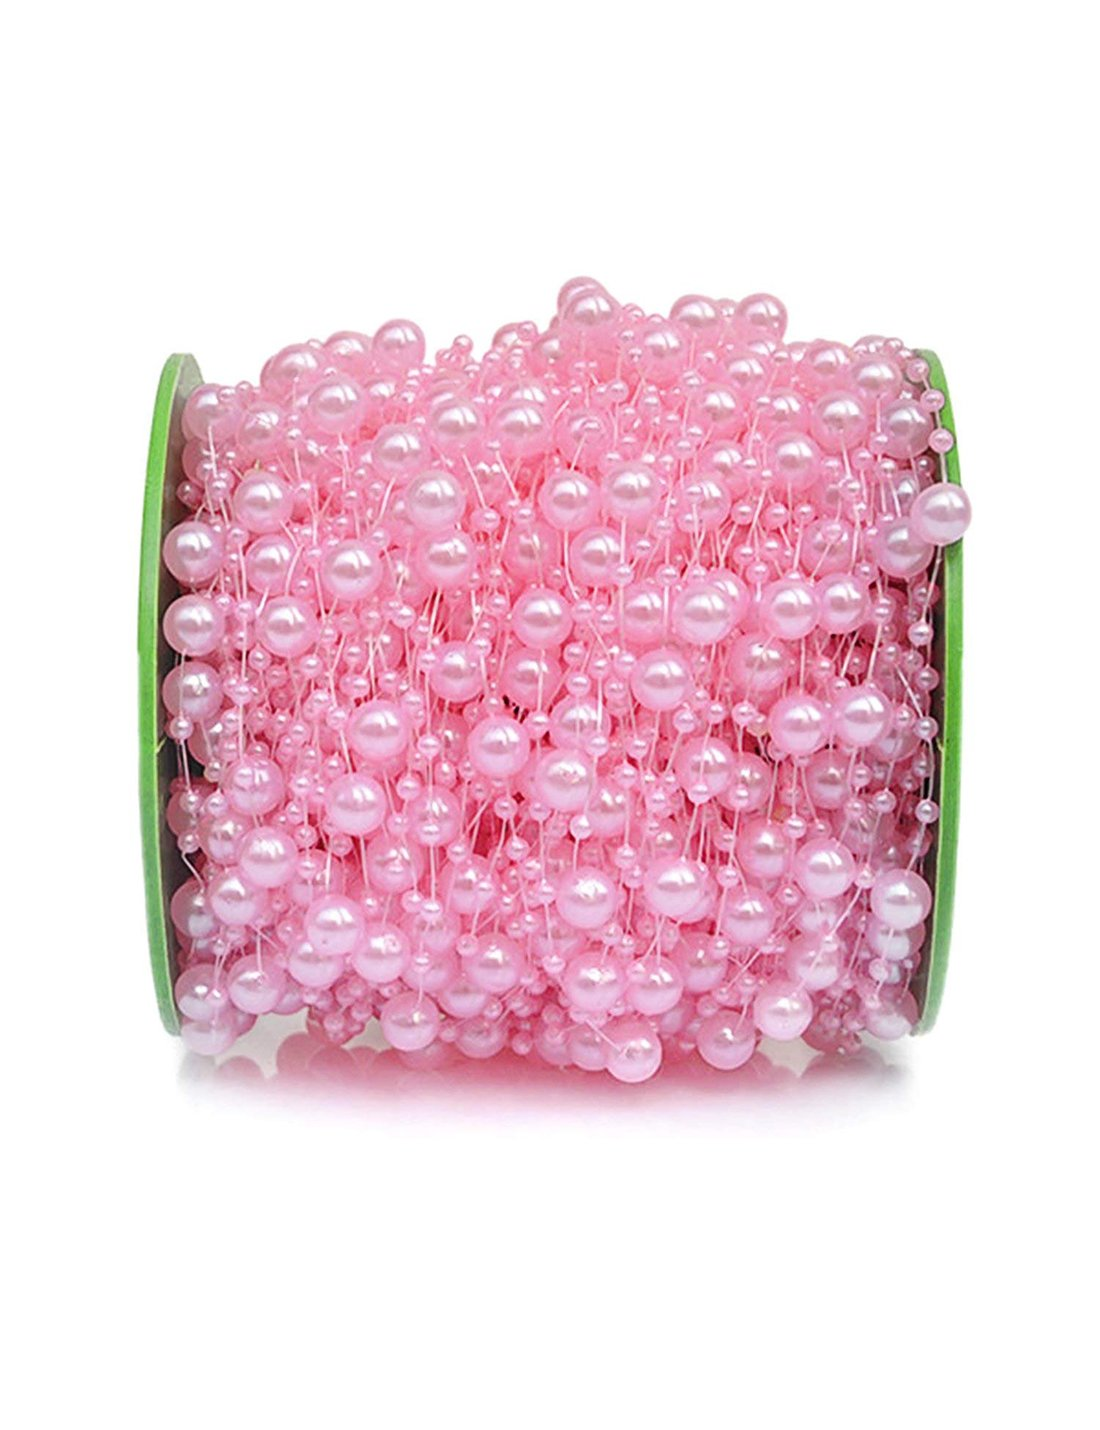 DomeStar Pink Pearl Garland, 200 Feet Pearl Strands Bead Garland Pearl Beaded Trim, Decorative Pearls on String